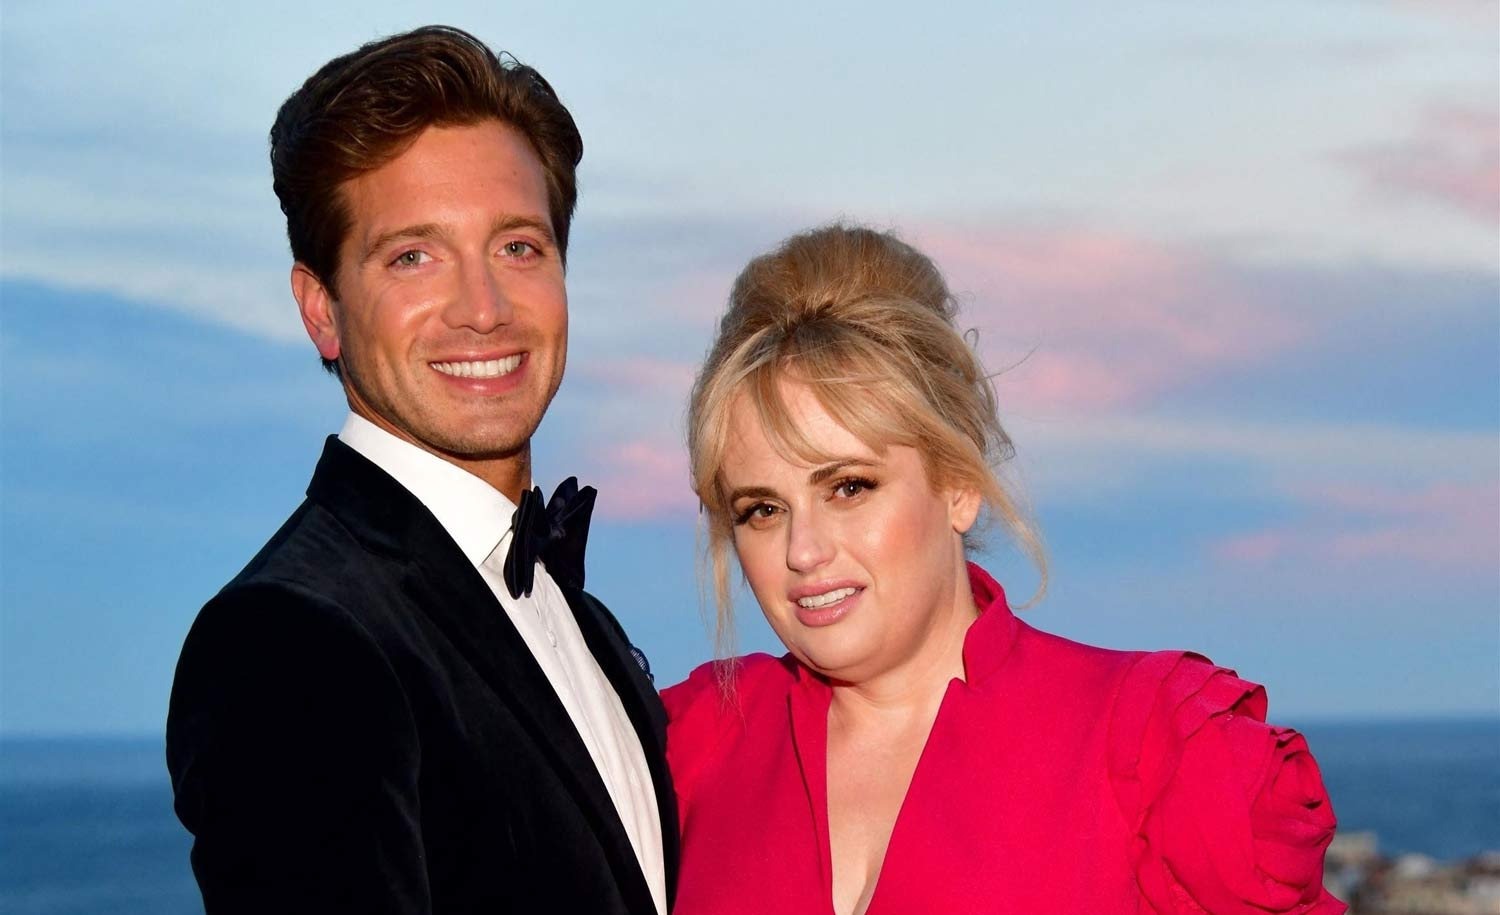 rebel-wilson-and-her-bf-jacob-busch-pack-the-pda-in-cute-beach-video-check-out-her-stunning-strapless-bathing-suit